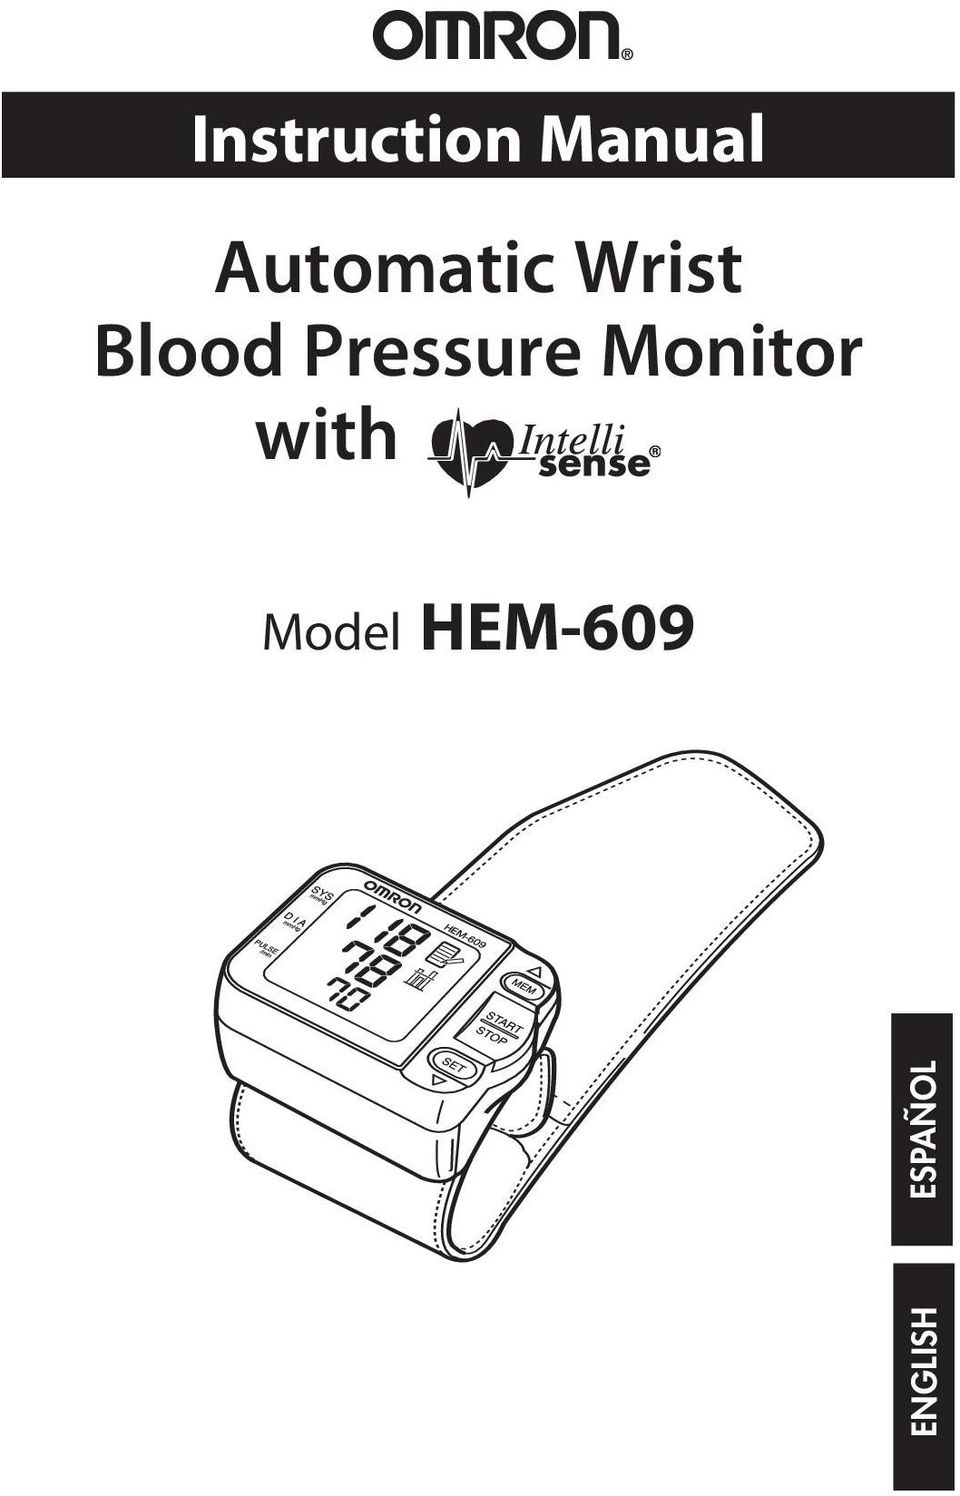 Pressure Monitor with